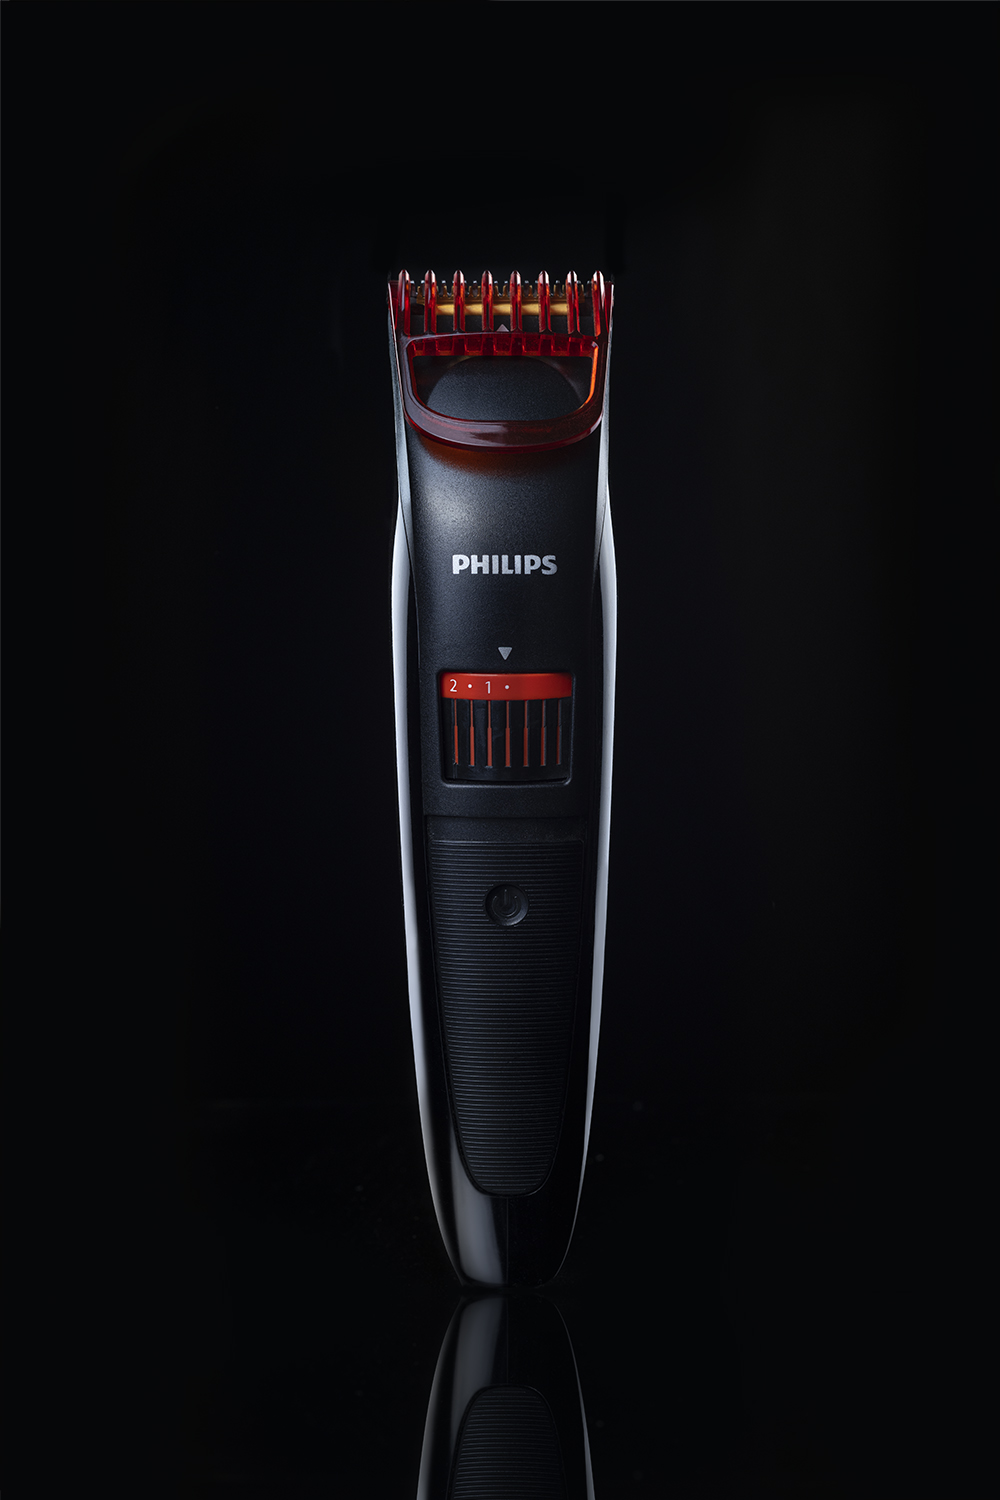 Philips Trimmer front view